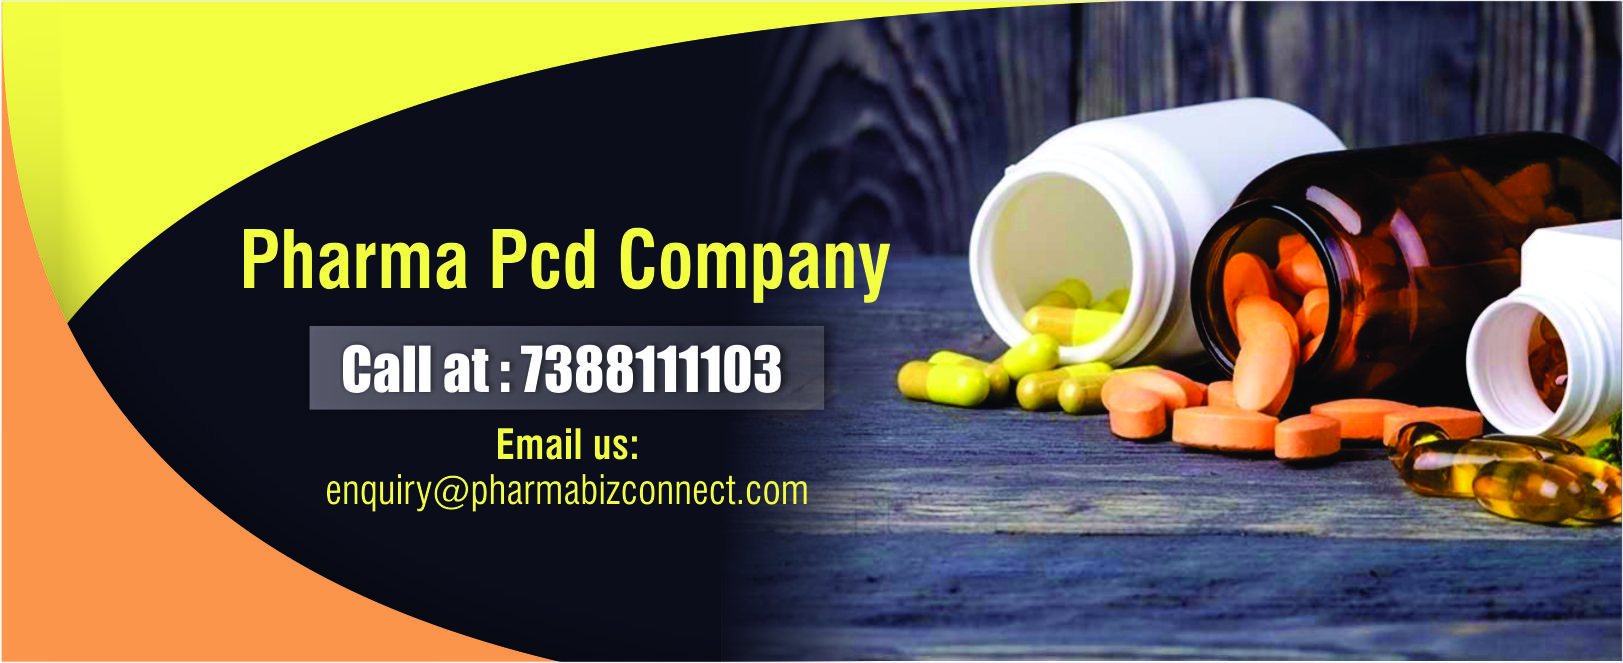 Why Owning Pharma Franchise is better than Marketing Job?